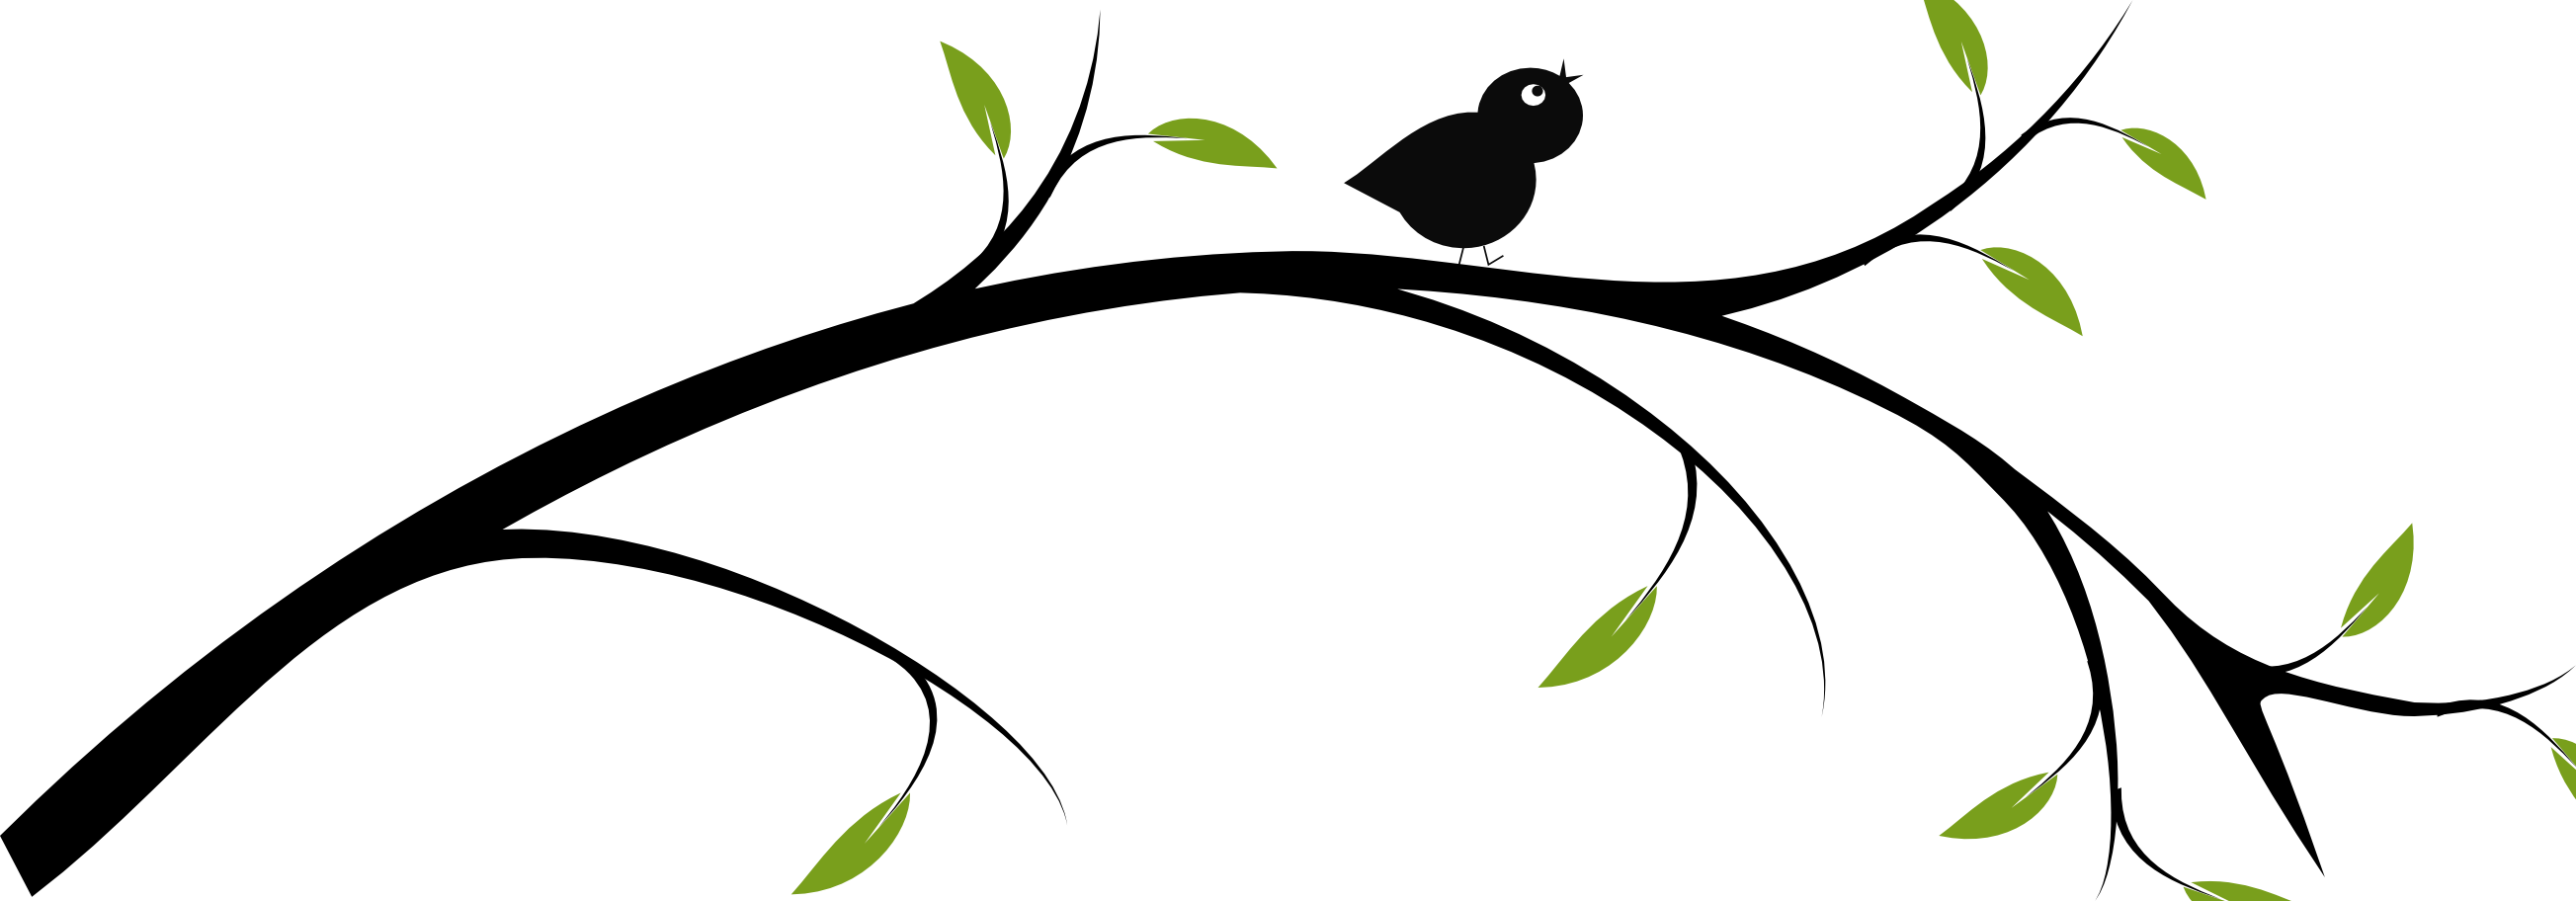 Tree branch png clipart. Birds on a clip